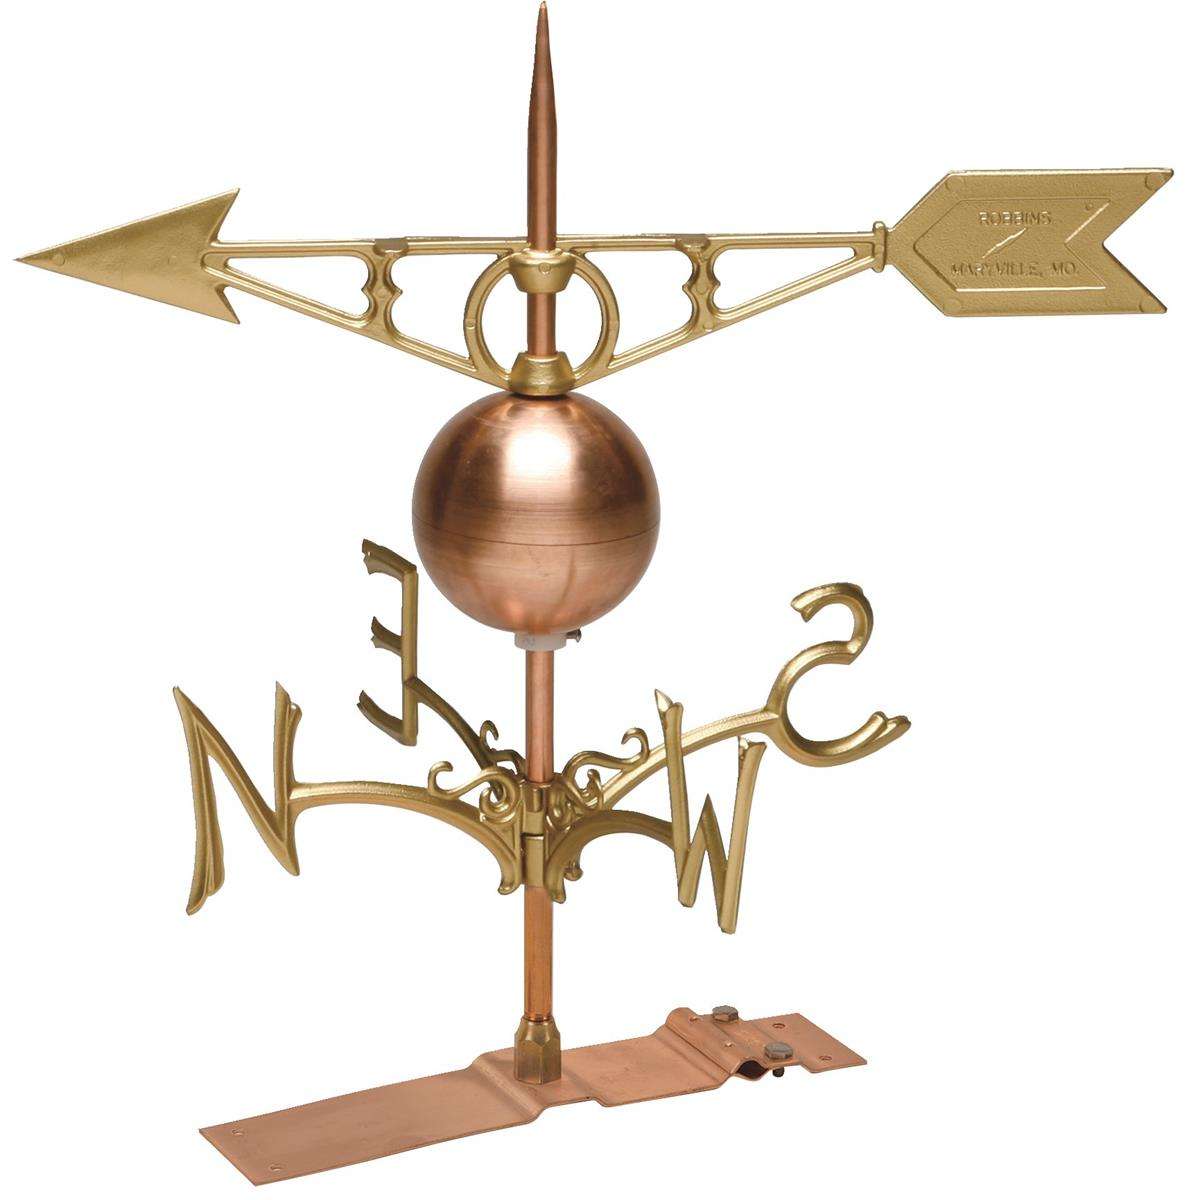 Antique-Style Weather Vane